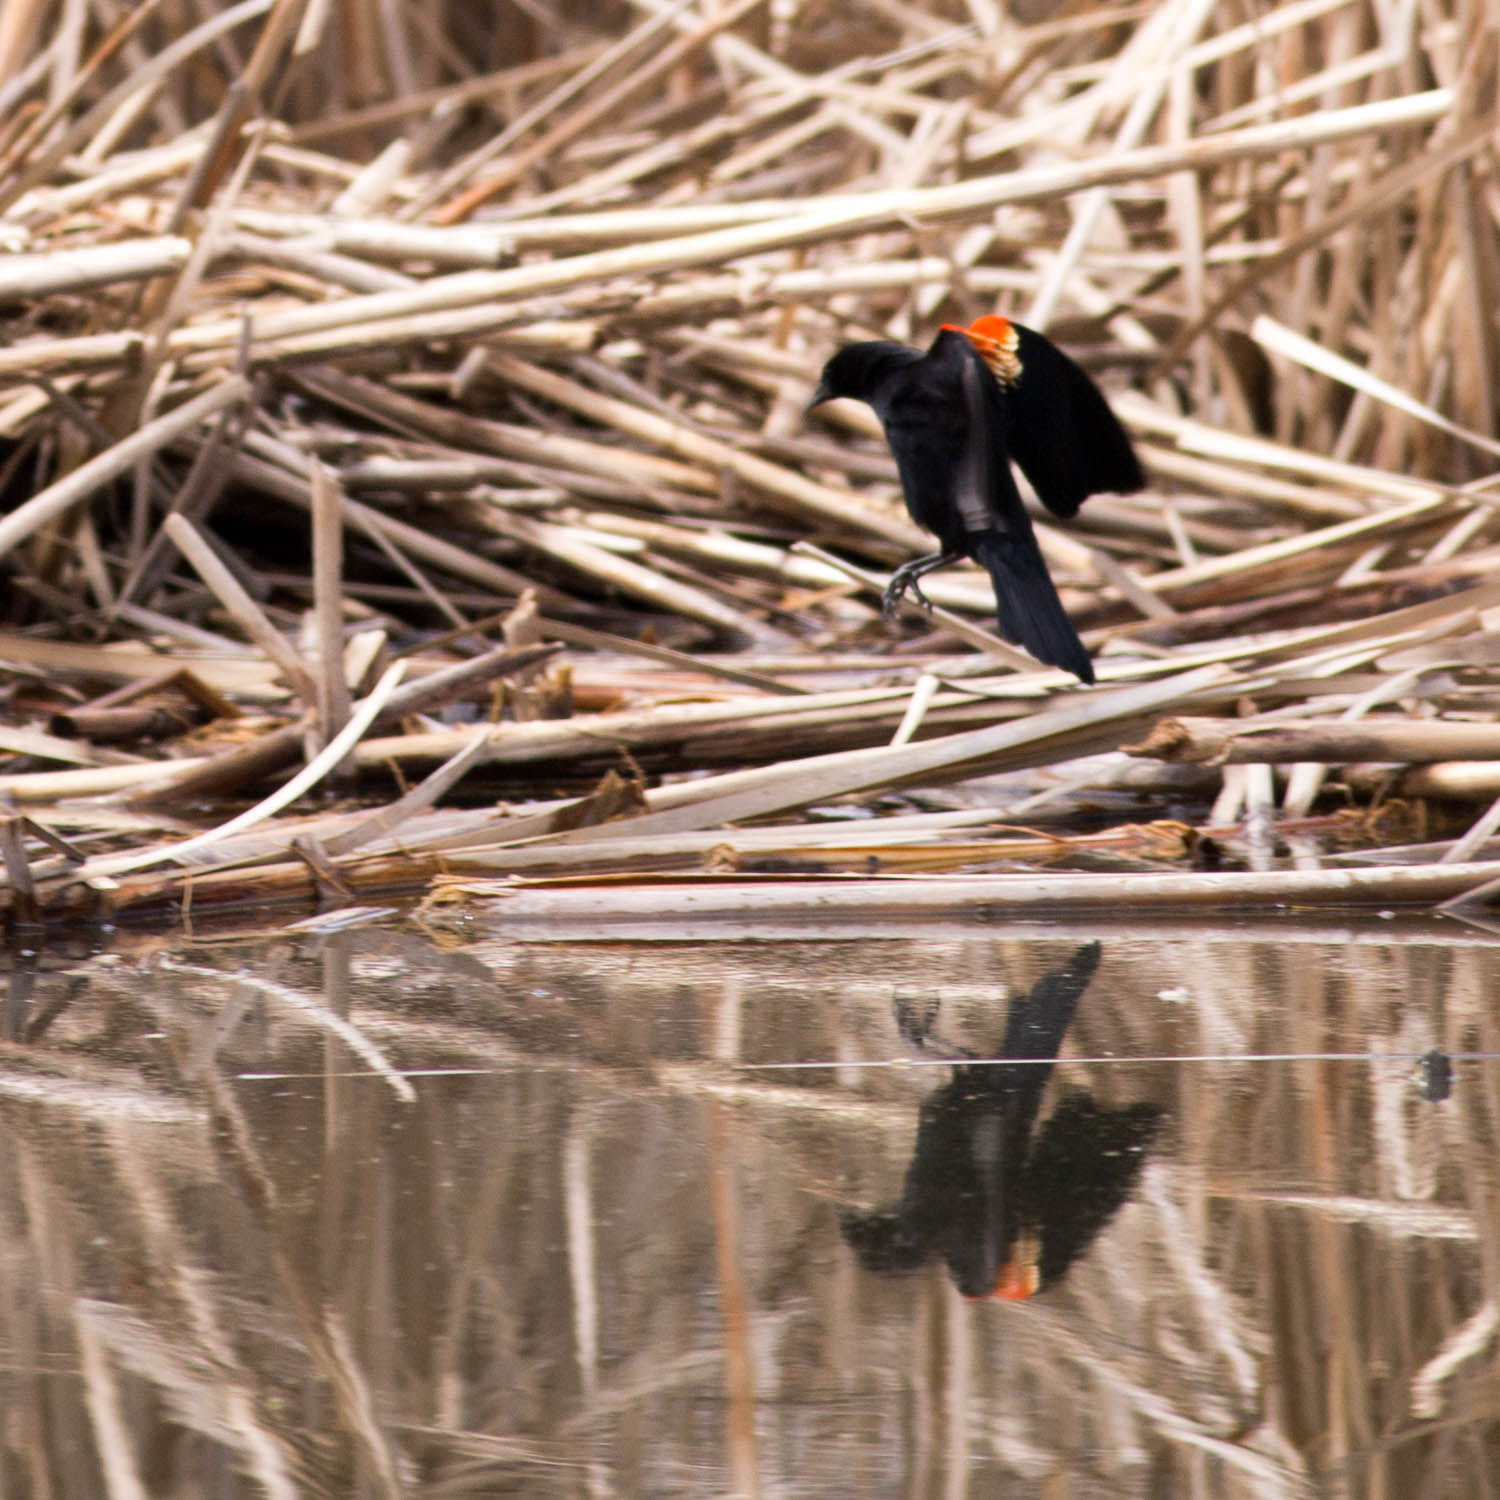 A red-winged blackbird's landing is reflected in the pond. Photo: Jesus Orduna, Brown University